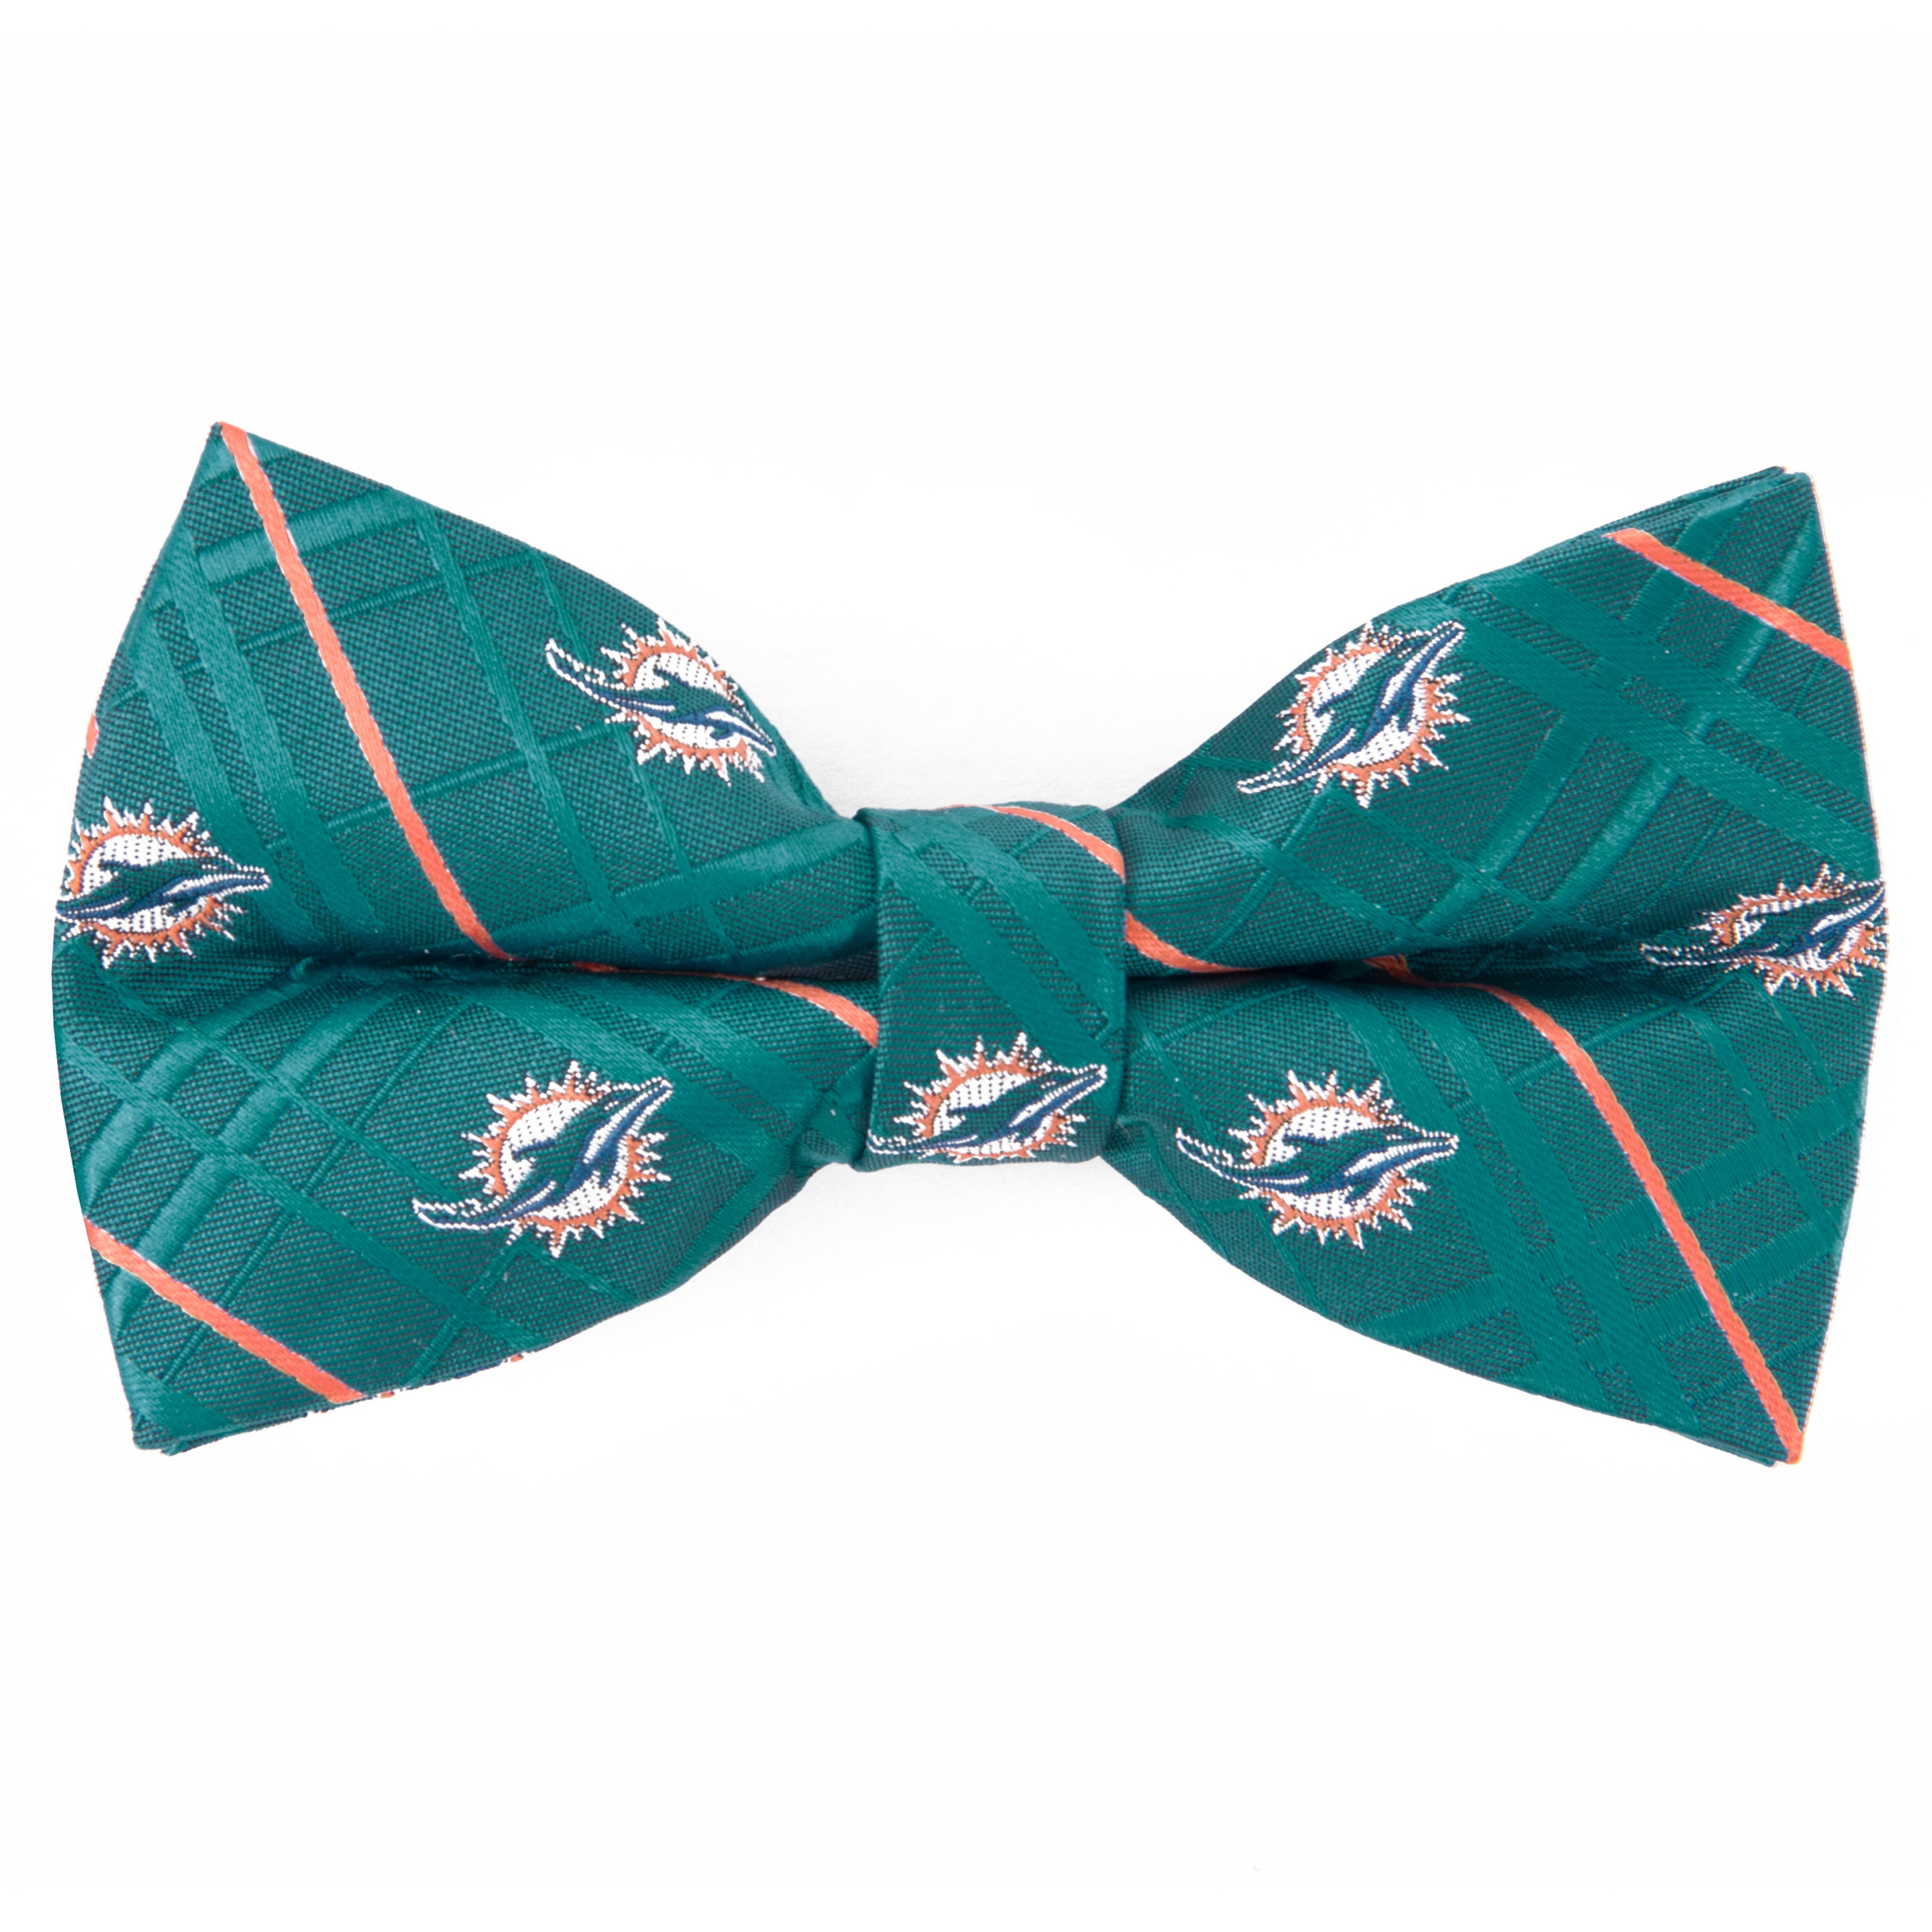 Dolphins-oxford-bowtie